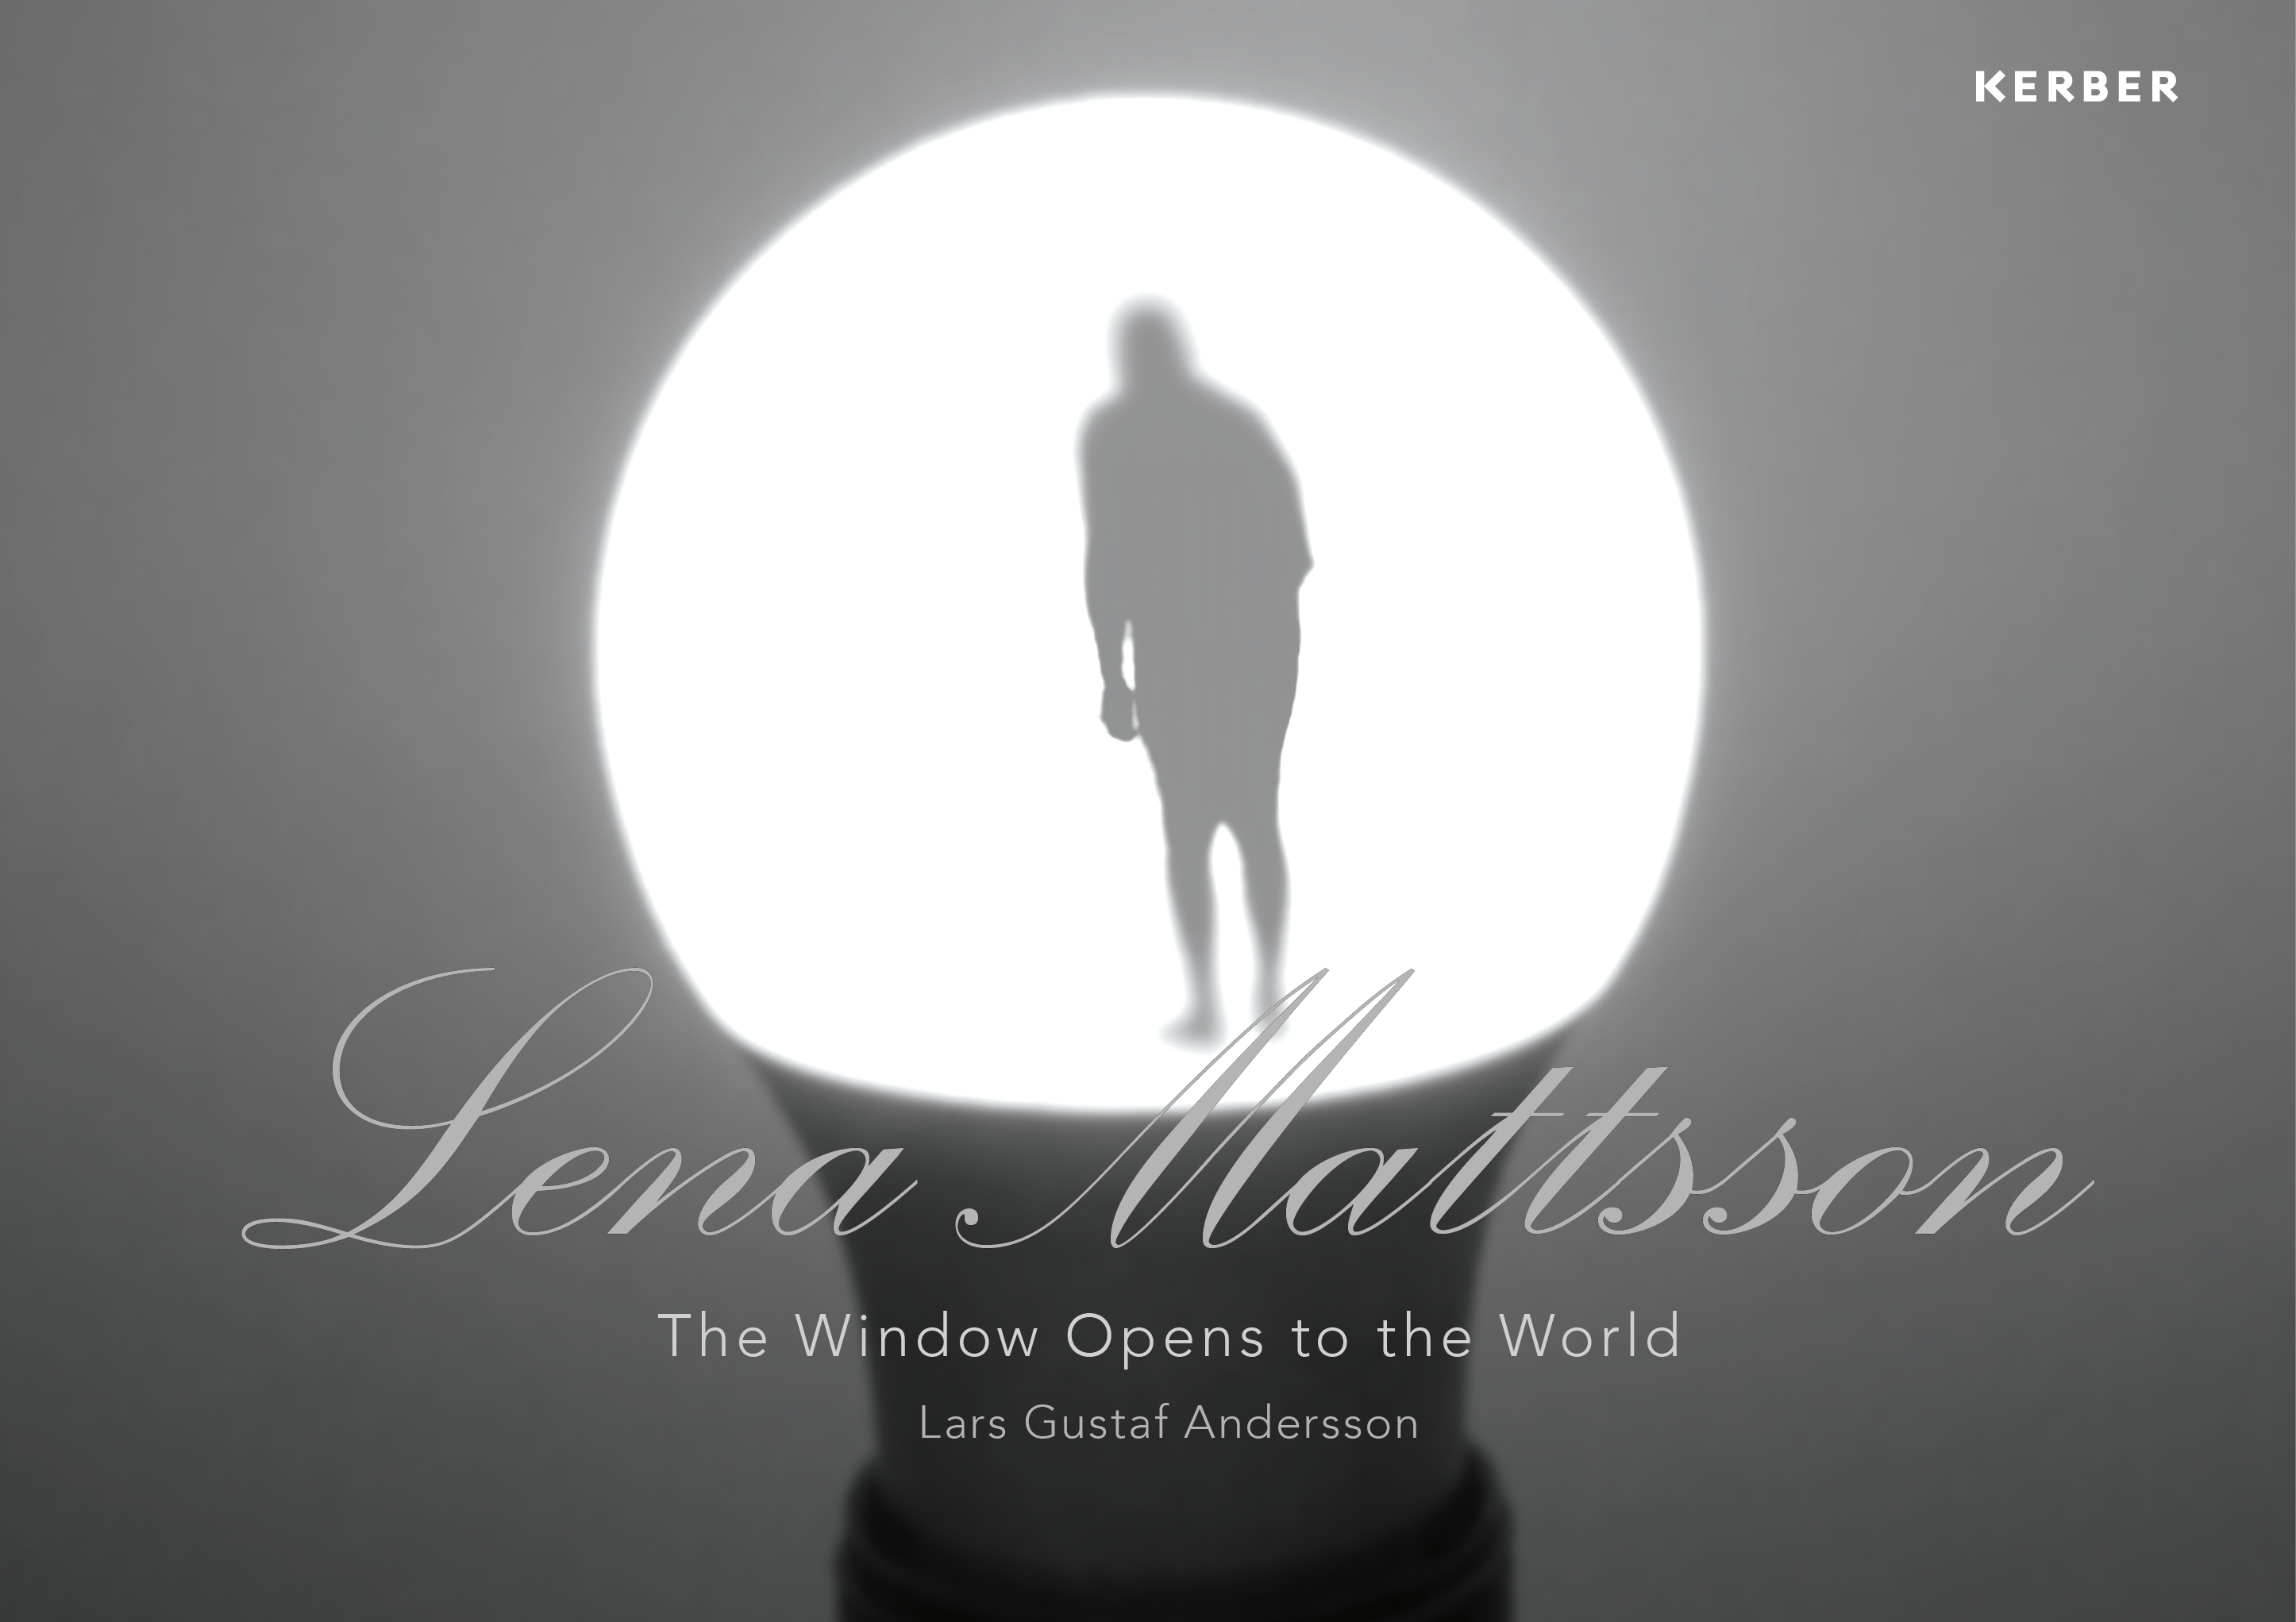 The Lena Mattsson - The Window Opens to the World